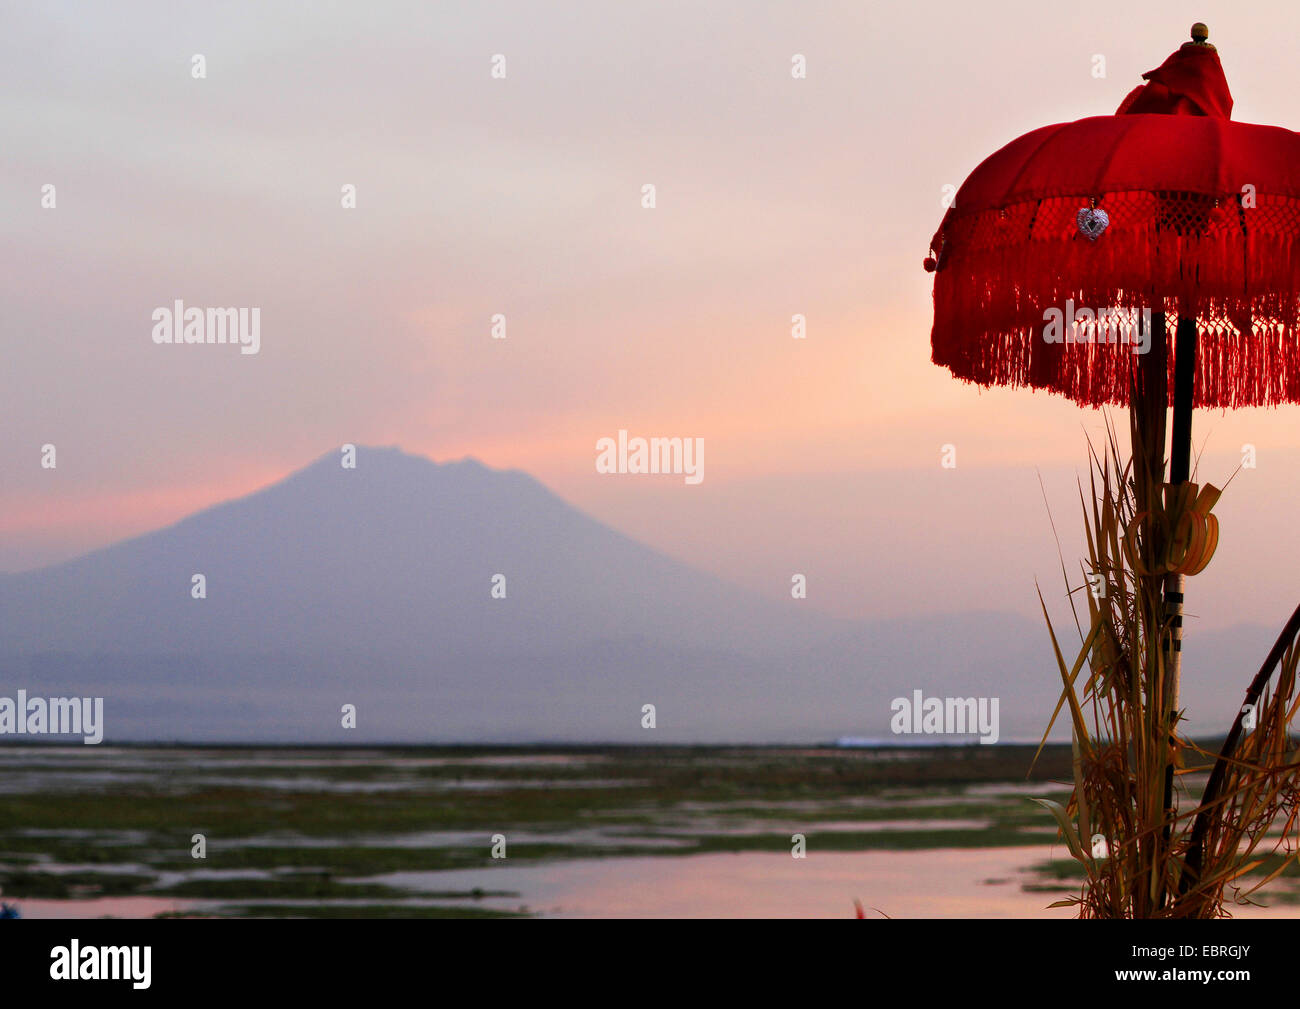 Mount Agung in evening light, sunshade in foreground, Indonesia, Bali - Stock Image